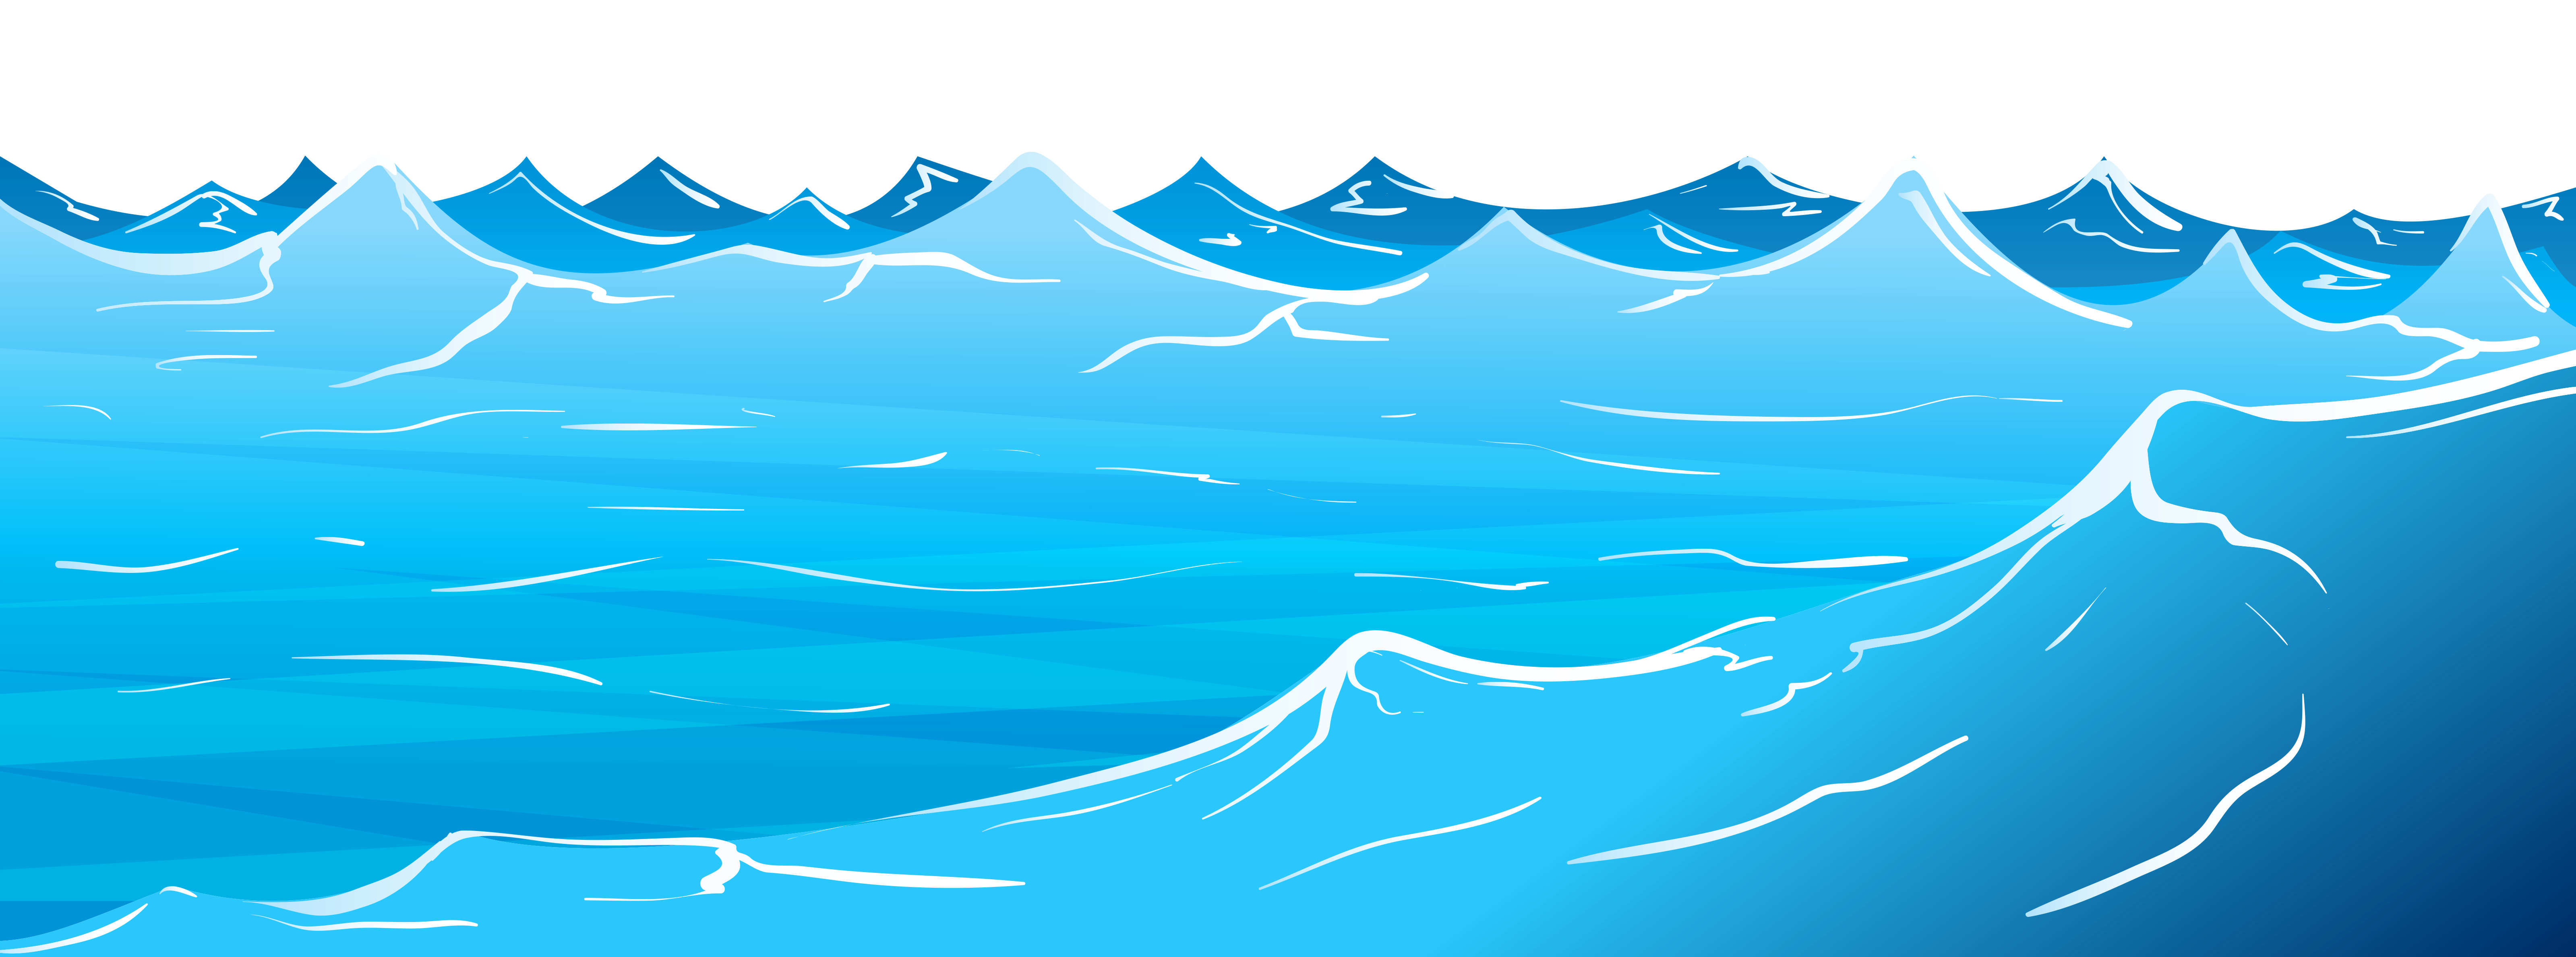 wave clipart curling wave